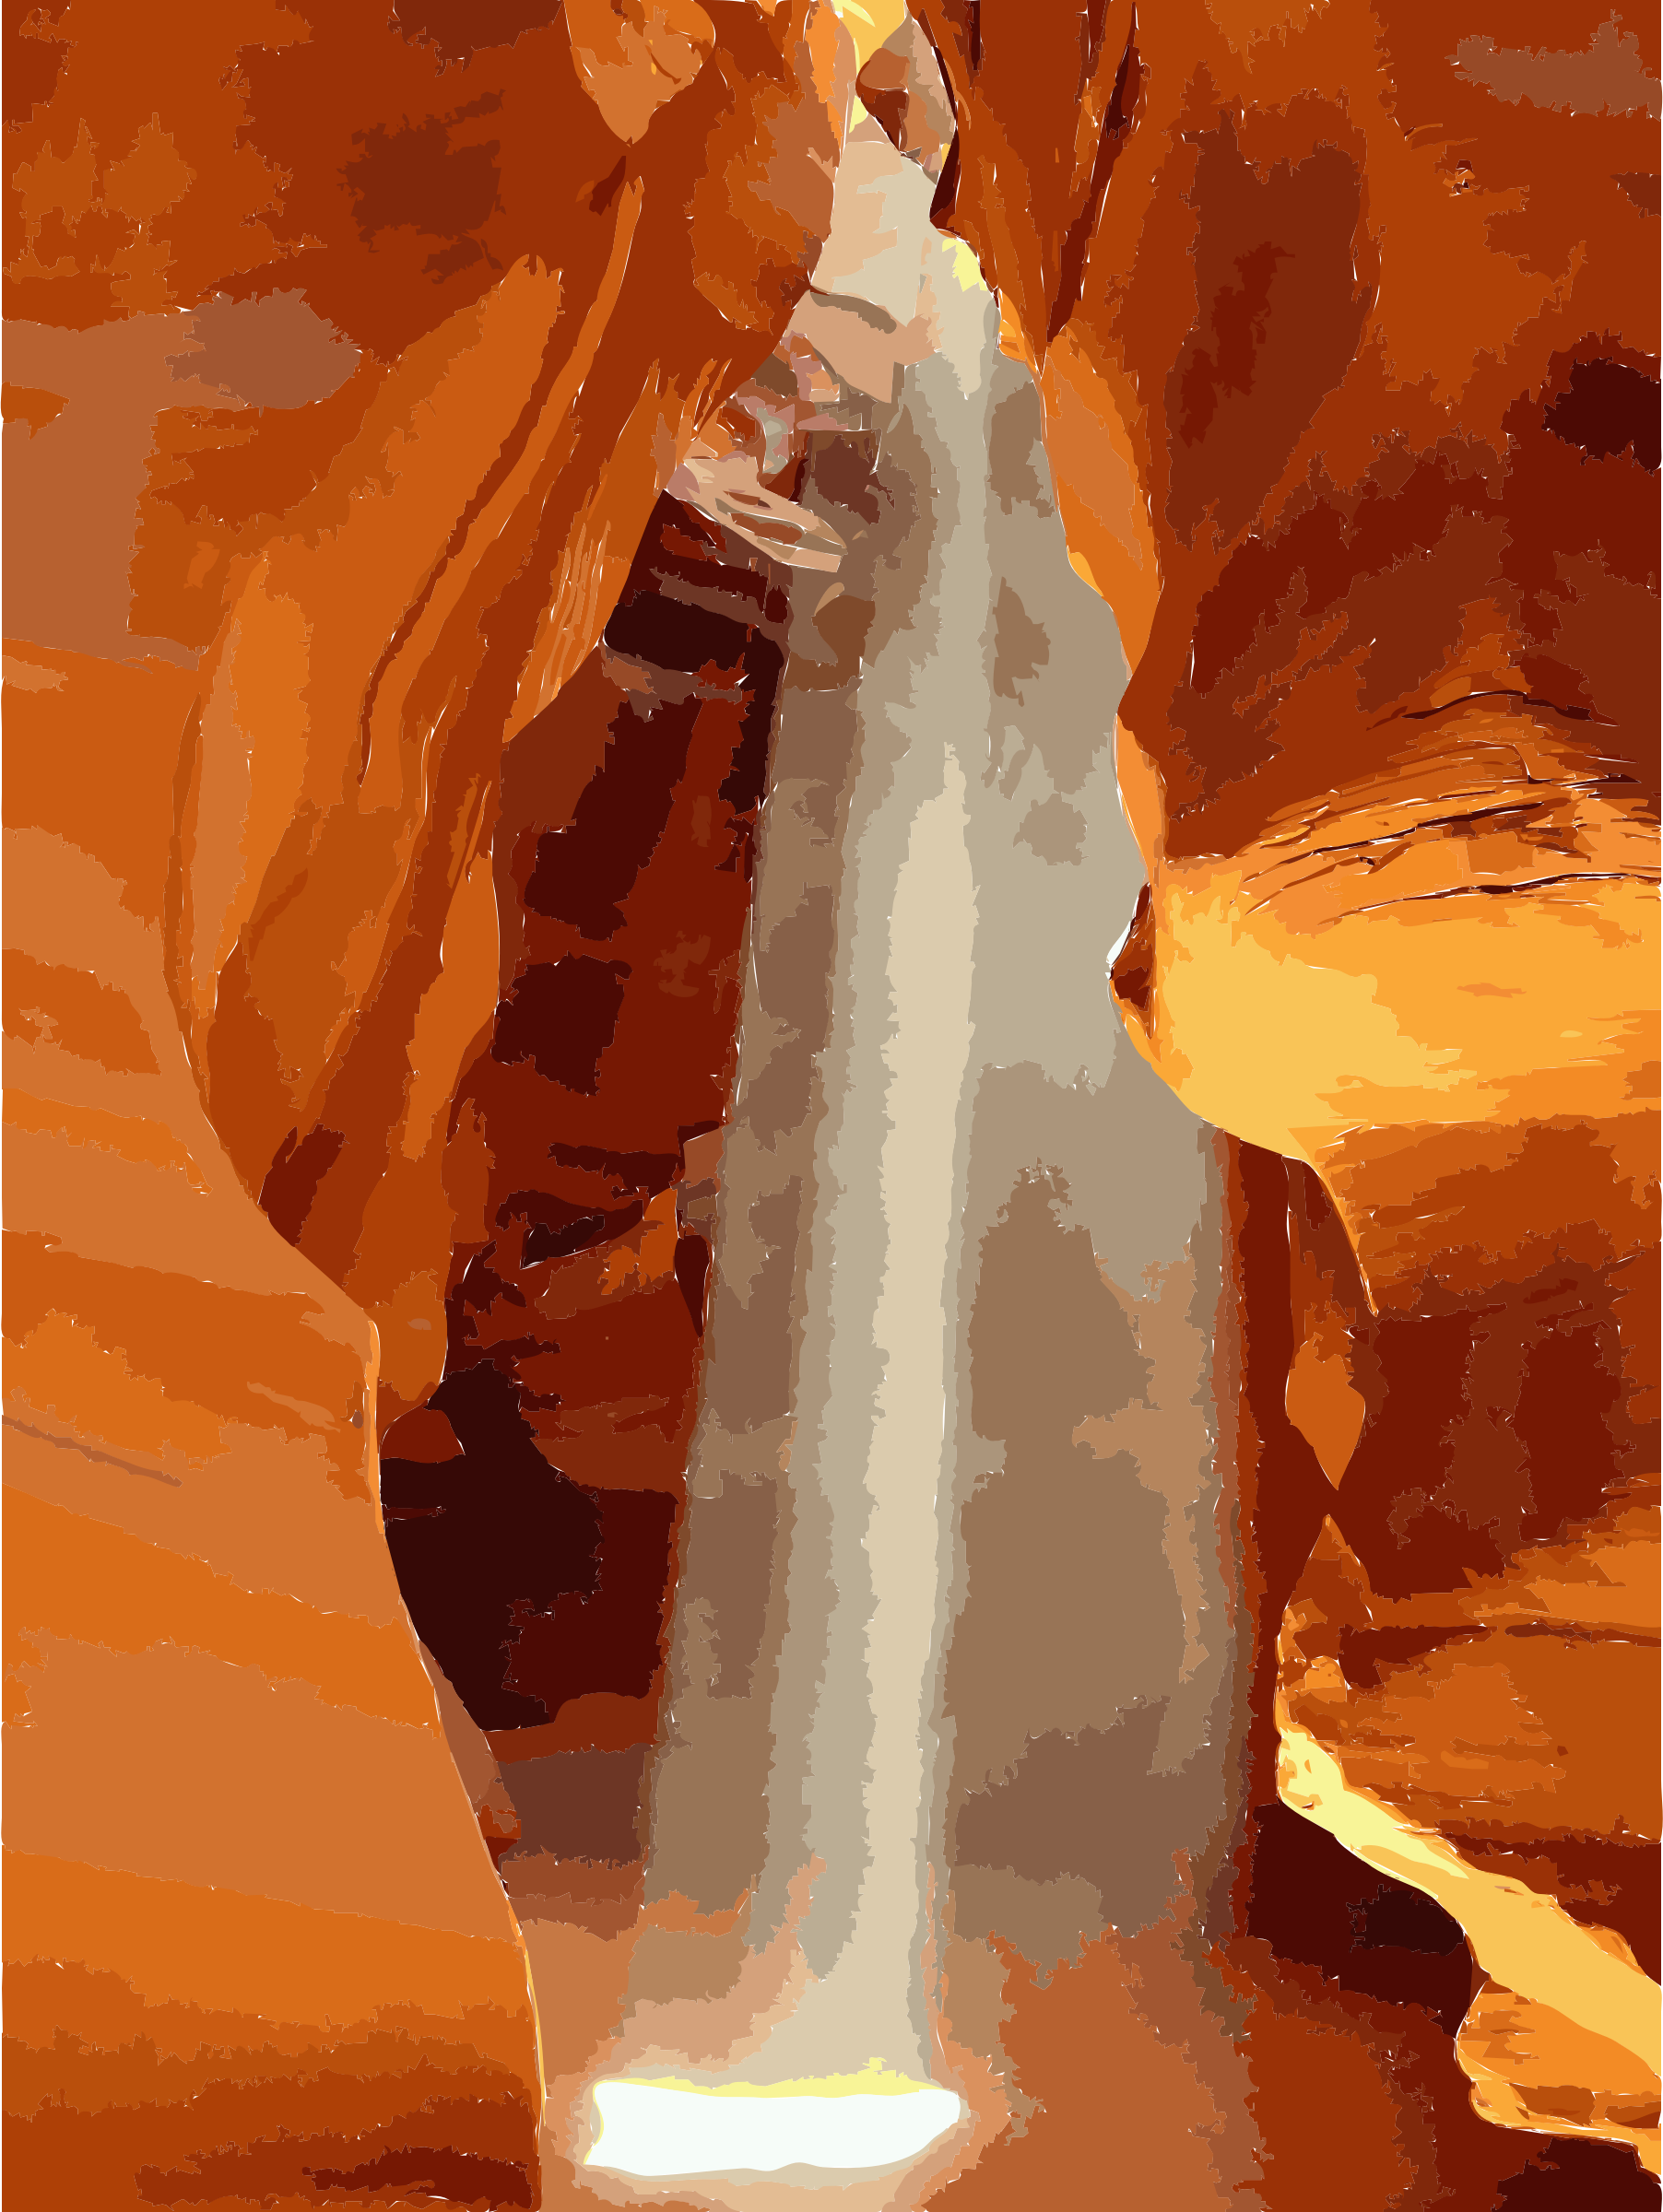 USA Antelope-Canyon by 5n7epj+9741chlinrj78